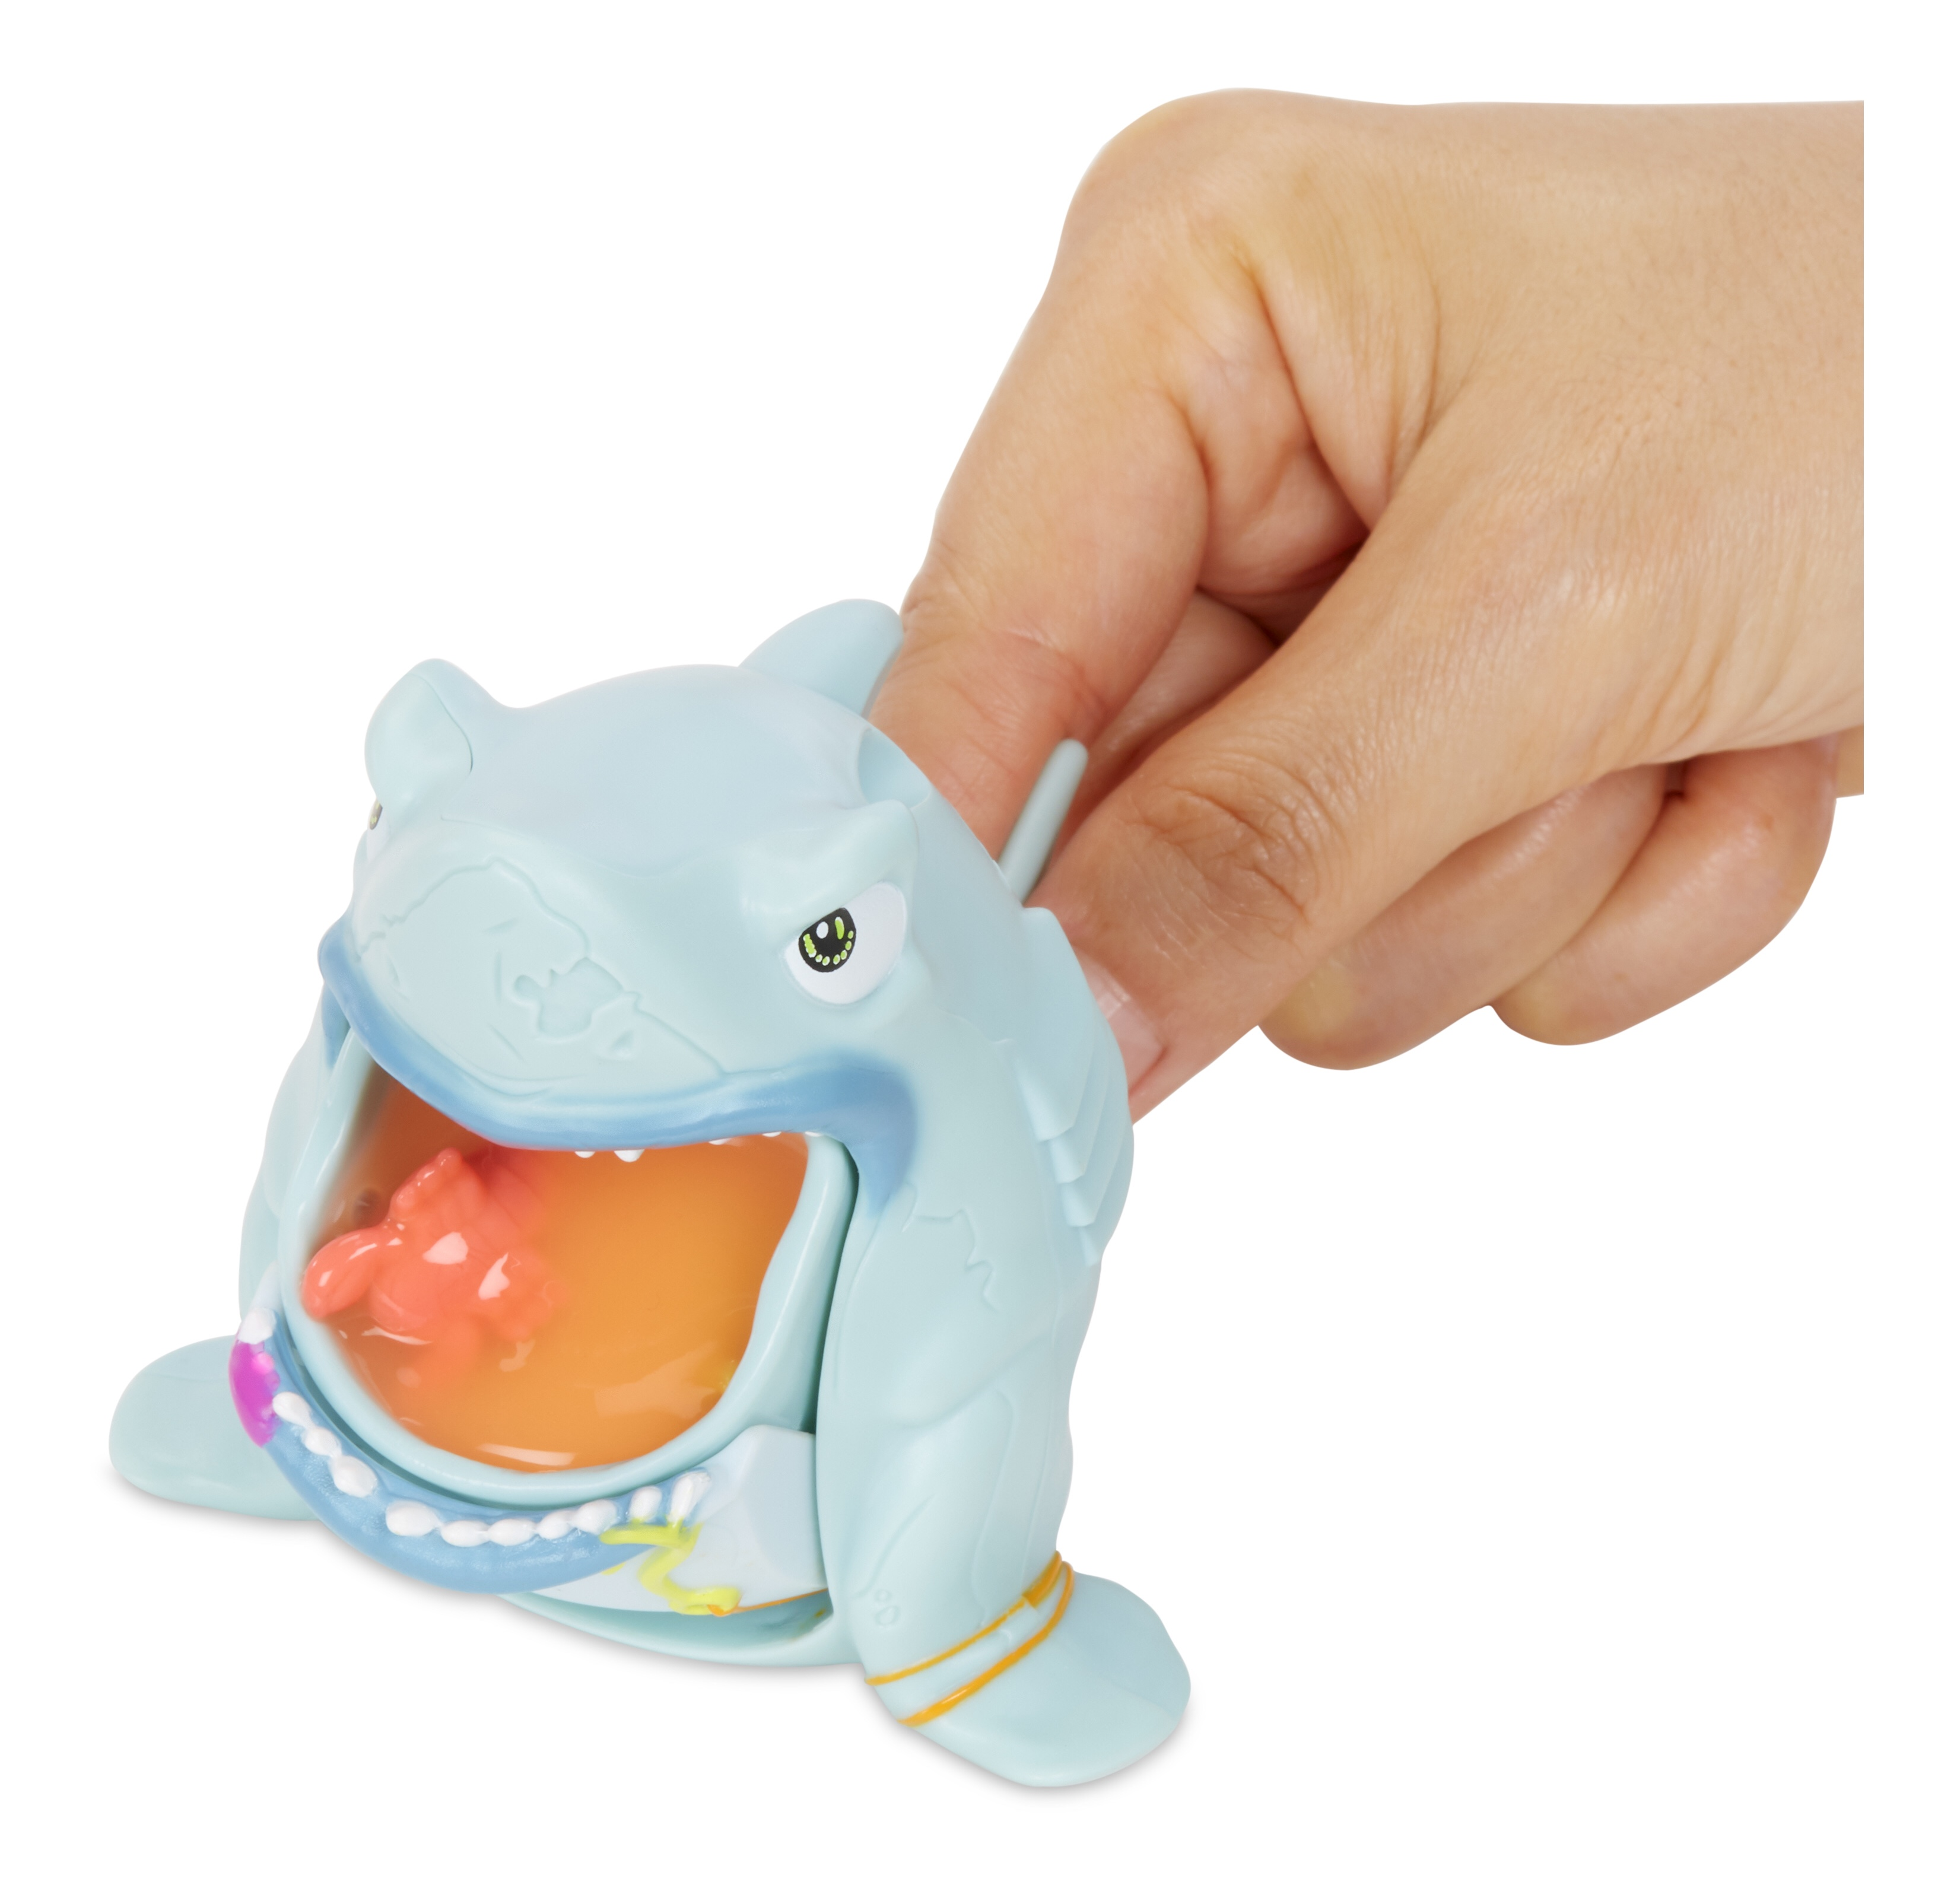 barf buddies crate creatures speelgoed slijm toys kids kinderen mama mamablog mamablogger blog blogger lifestyle laviedemama.nl